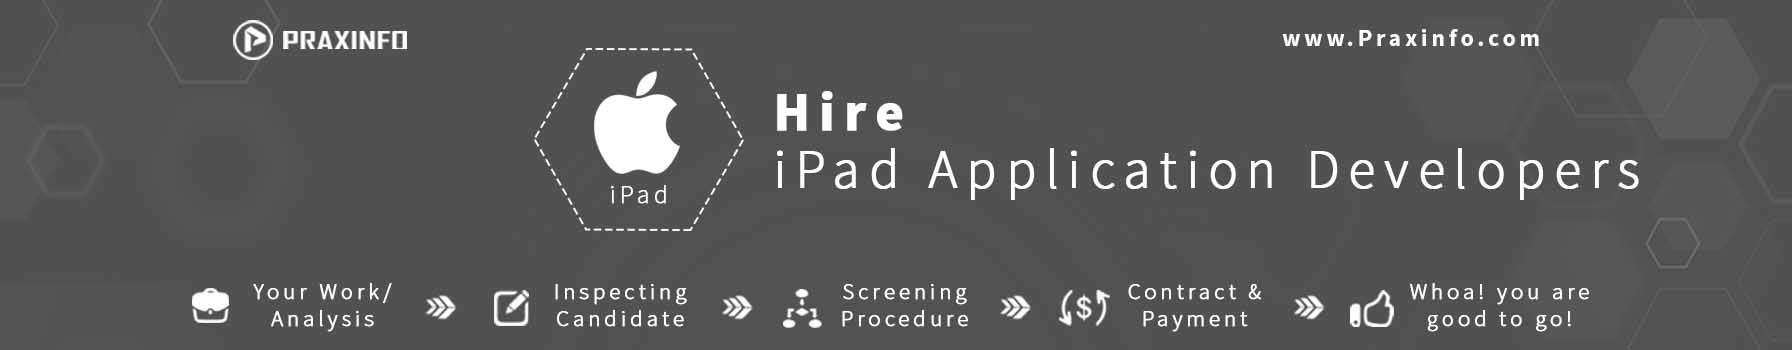 hire-iPad-Application-developer-banner-1.jpg